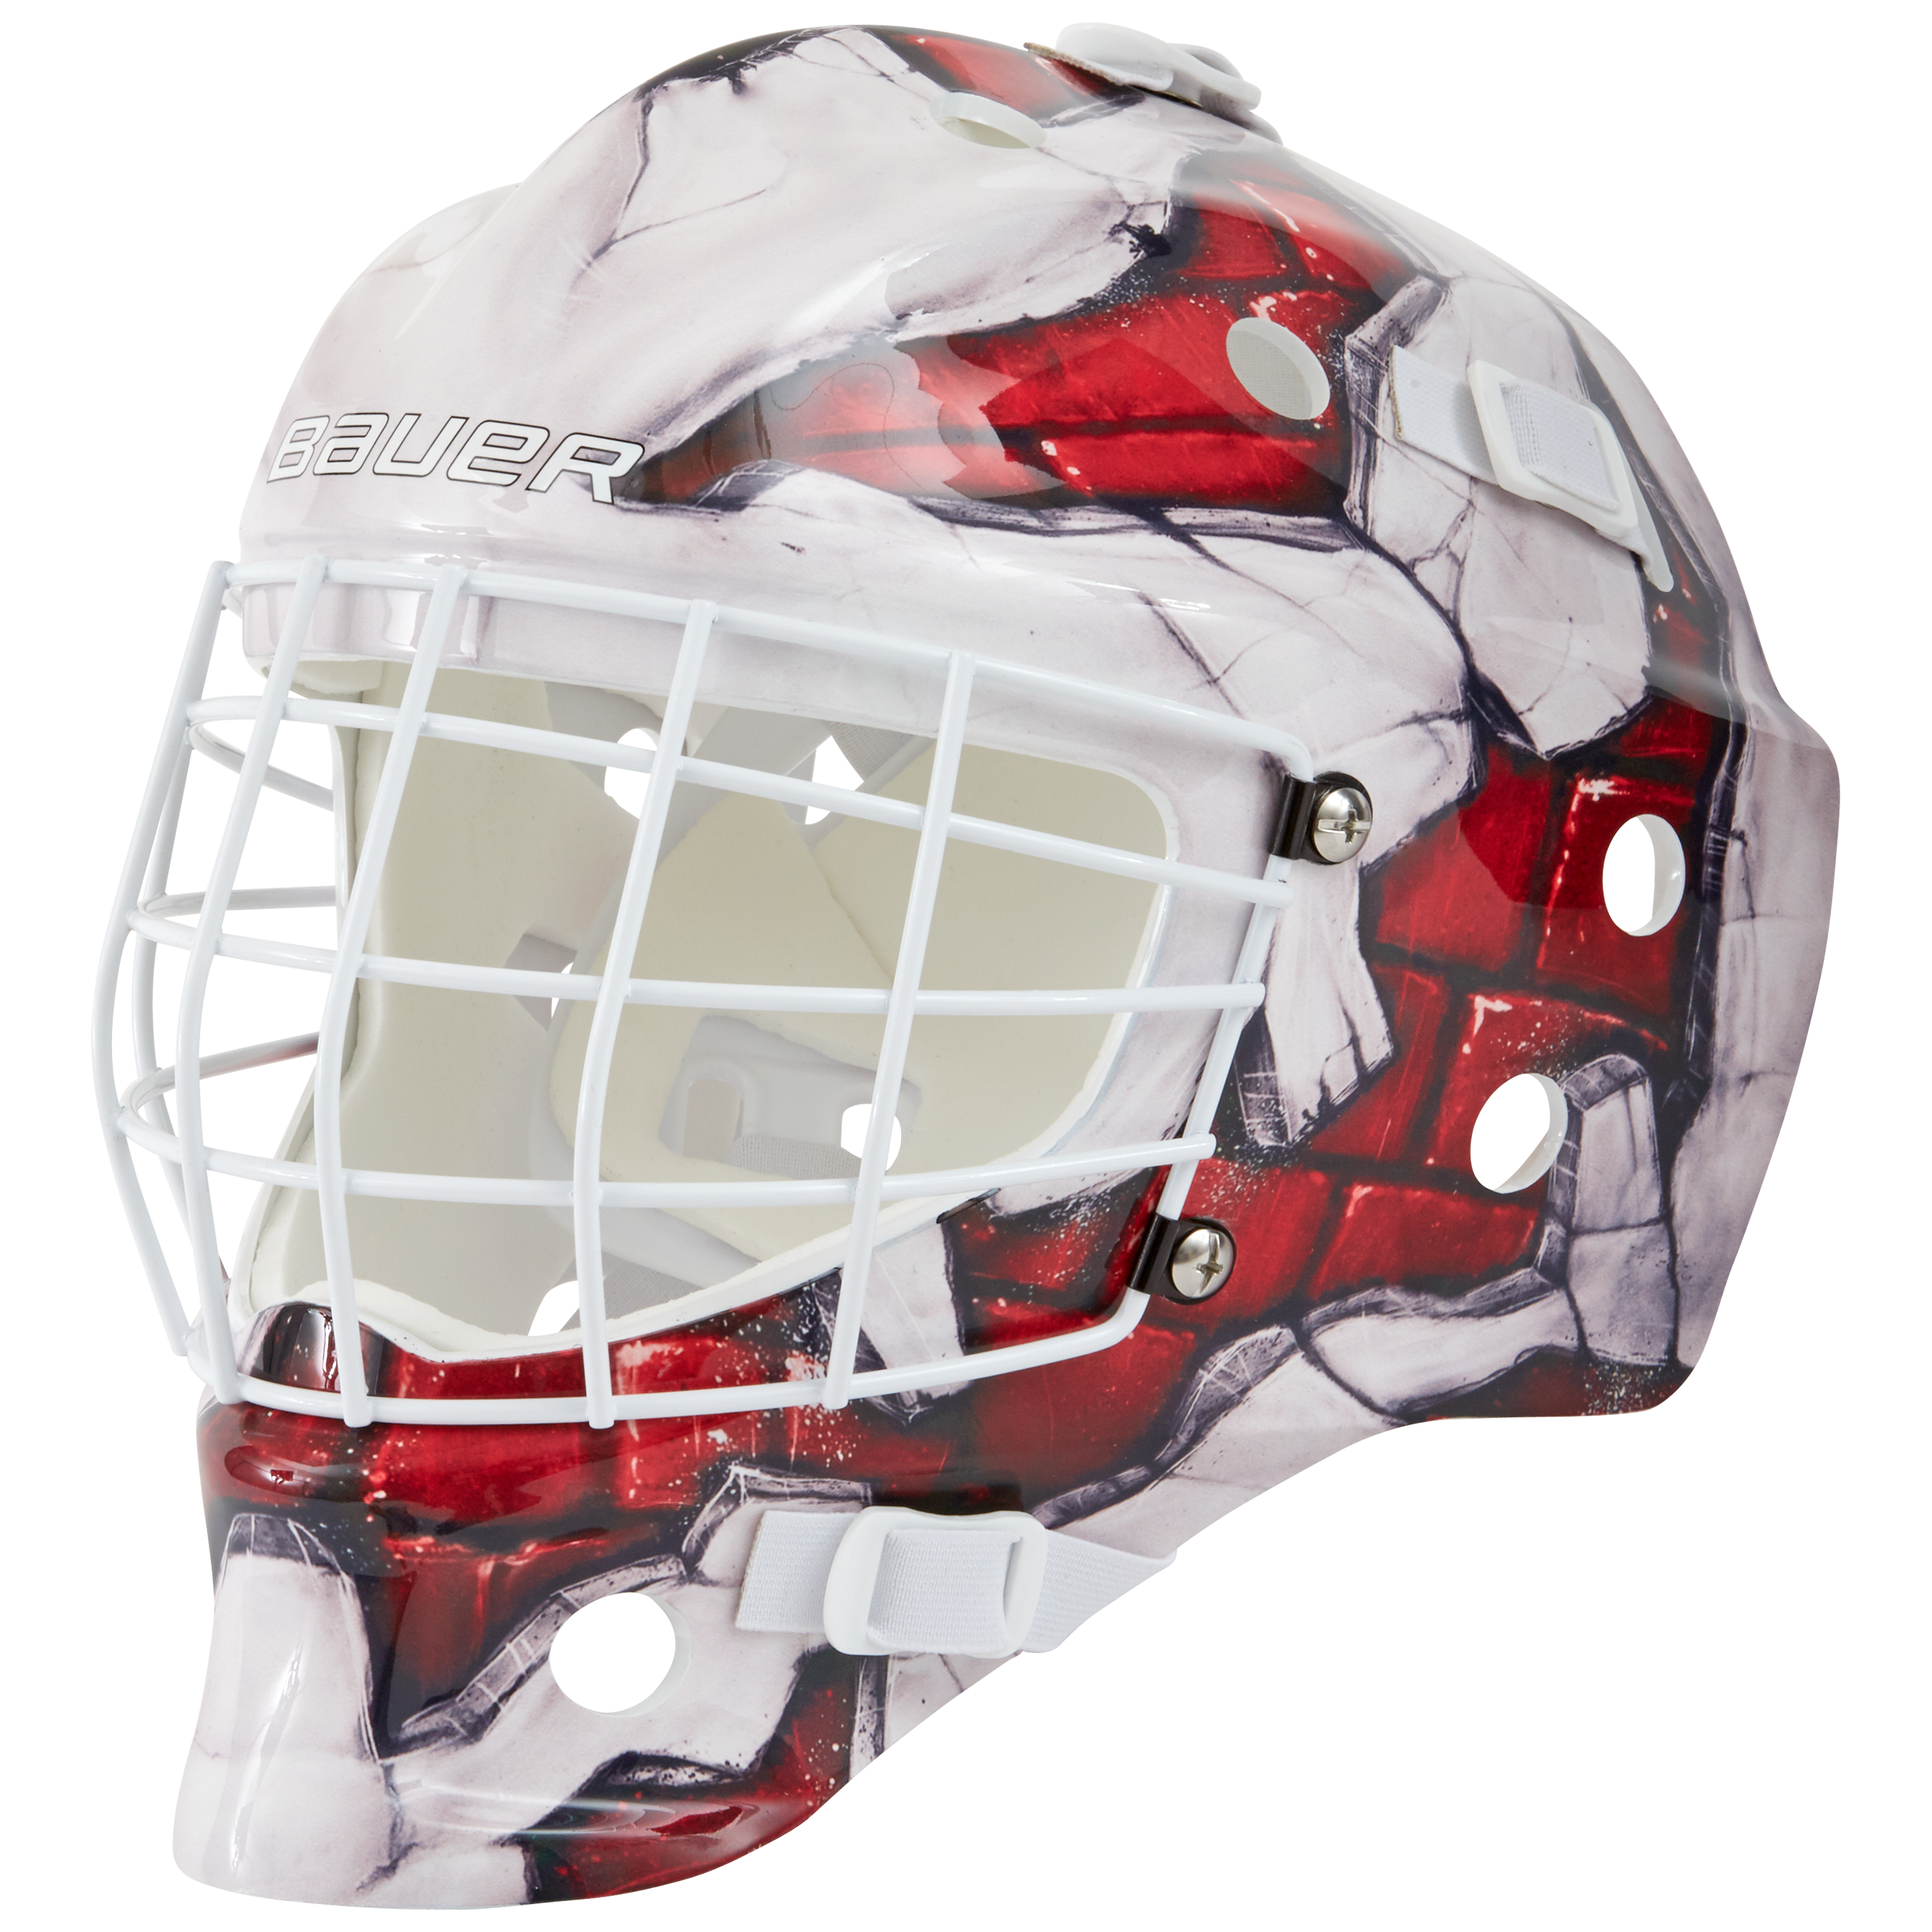 NME STREET GOAL MASK YOUTH S17,BRICK,Размер M